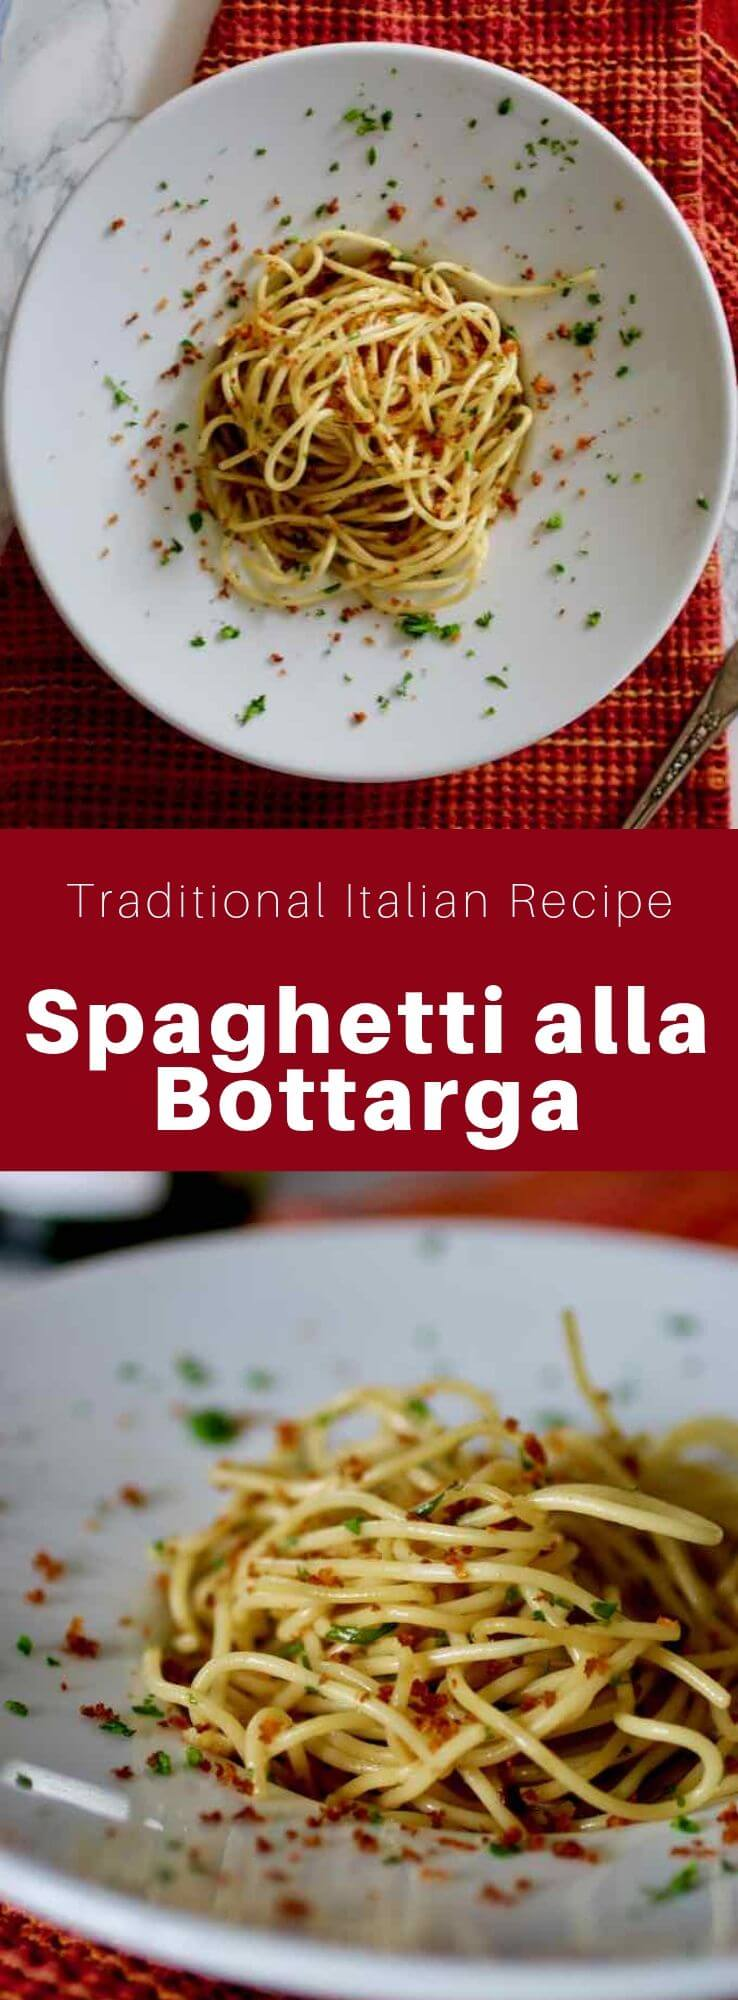 Spaghetti alla bottarga is a delicious traditional Italian pasta dish served with salted and cured fish eggs called bottarga. #Italy #Sardinia #ItalianFood #ItalianRecipe #ItalianCuisine #WorldCuisine #196flavors